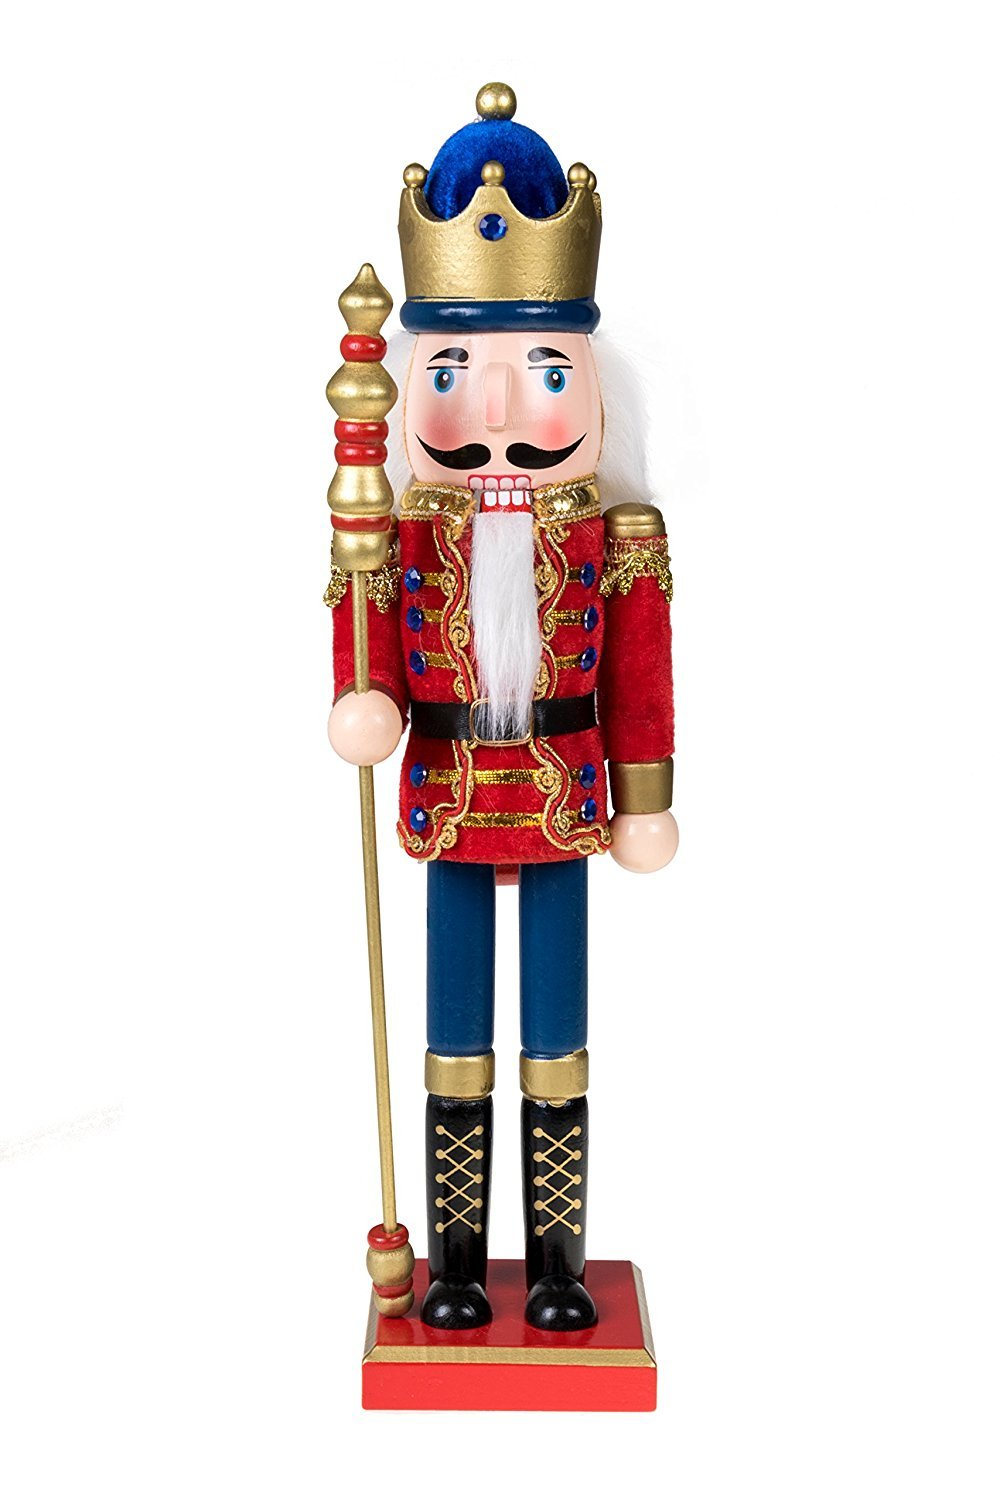 Clever Creations Traditional Wooden Royal King with Gold Crown Nutcracker Red Cape and Gold Crown and Scepter | Festive Christmas Decor | 15'' Tall Perfect for Shelves and Tables | 100% Wood